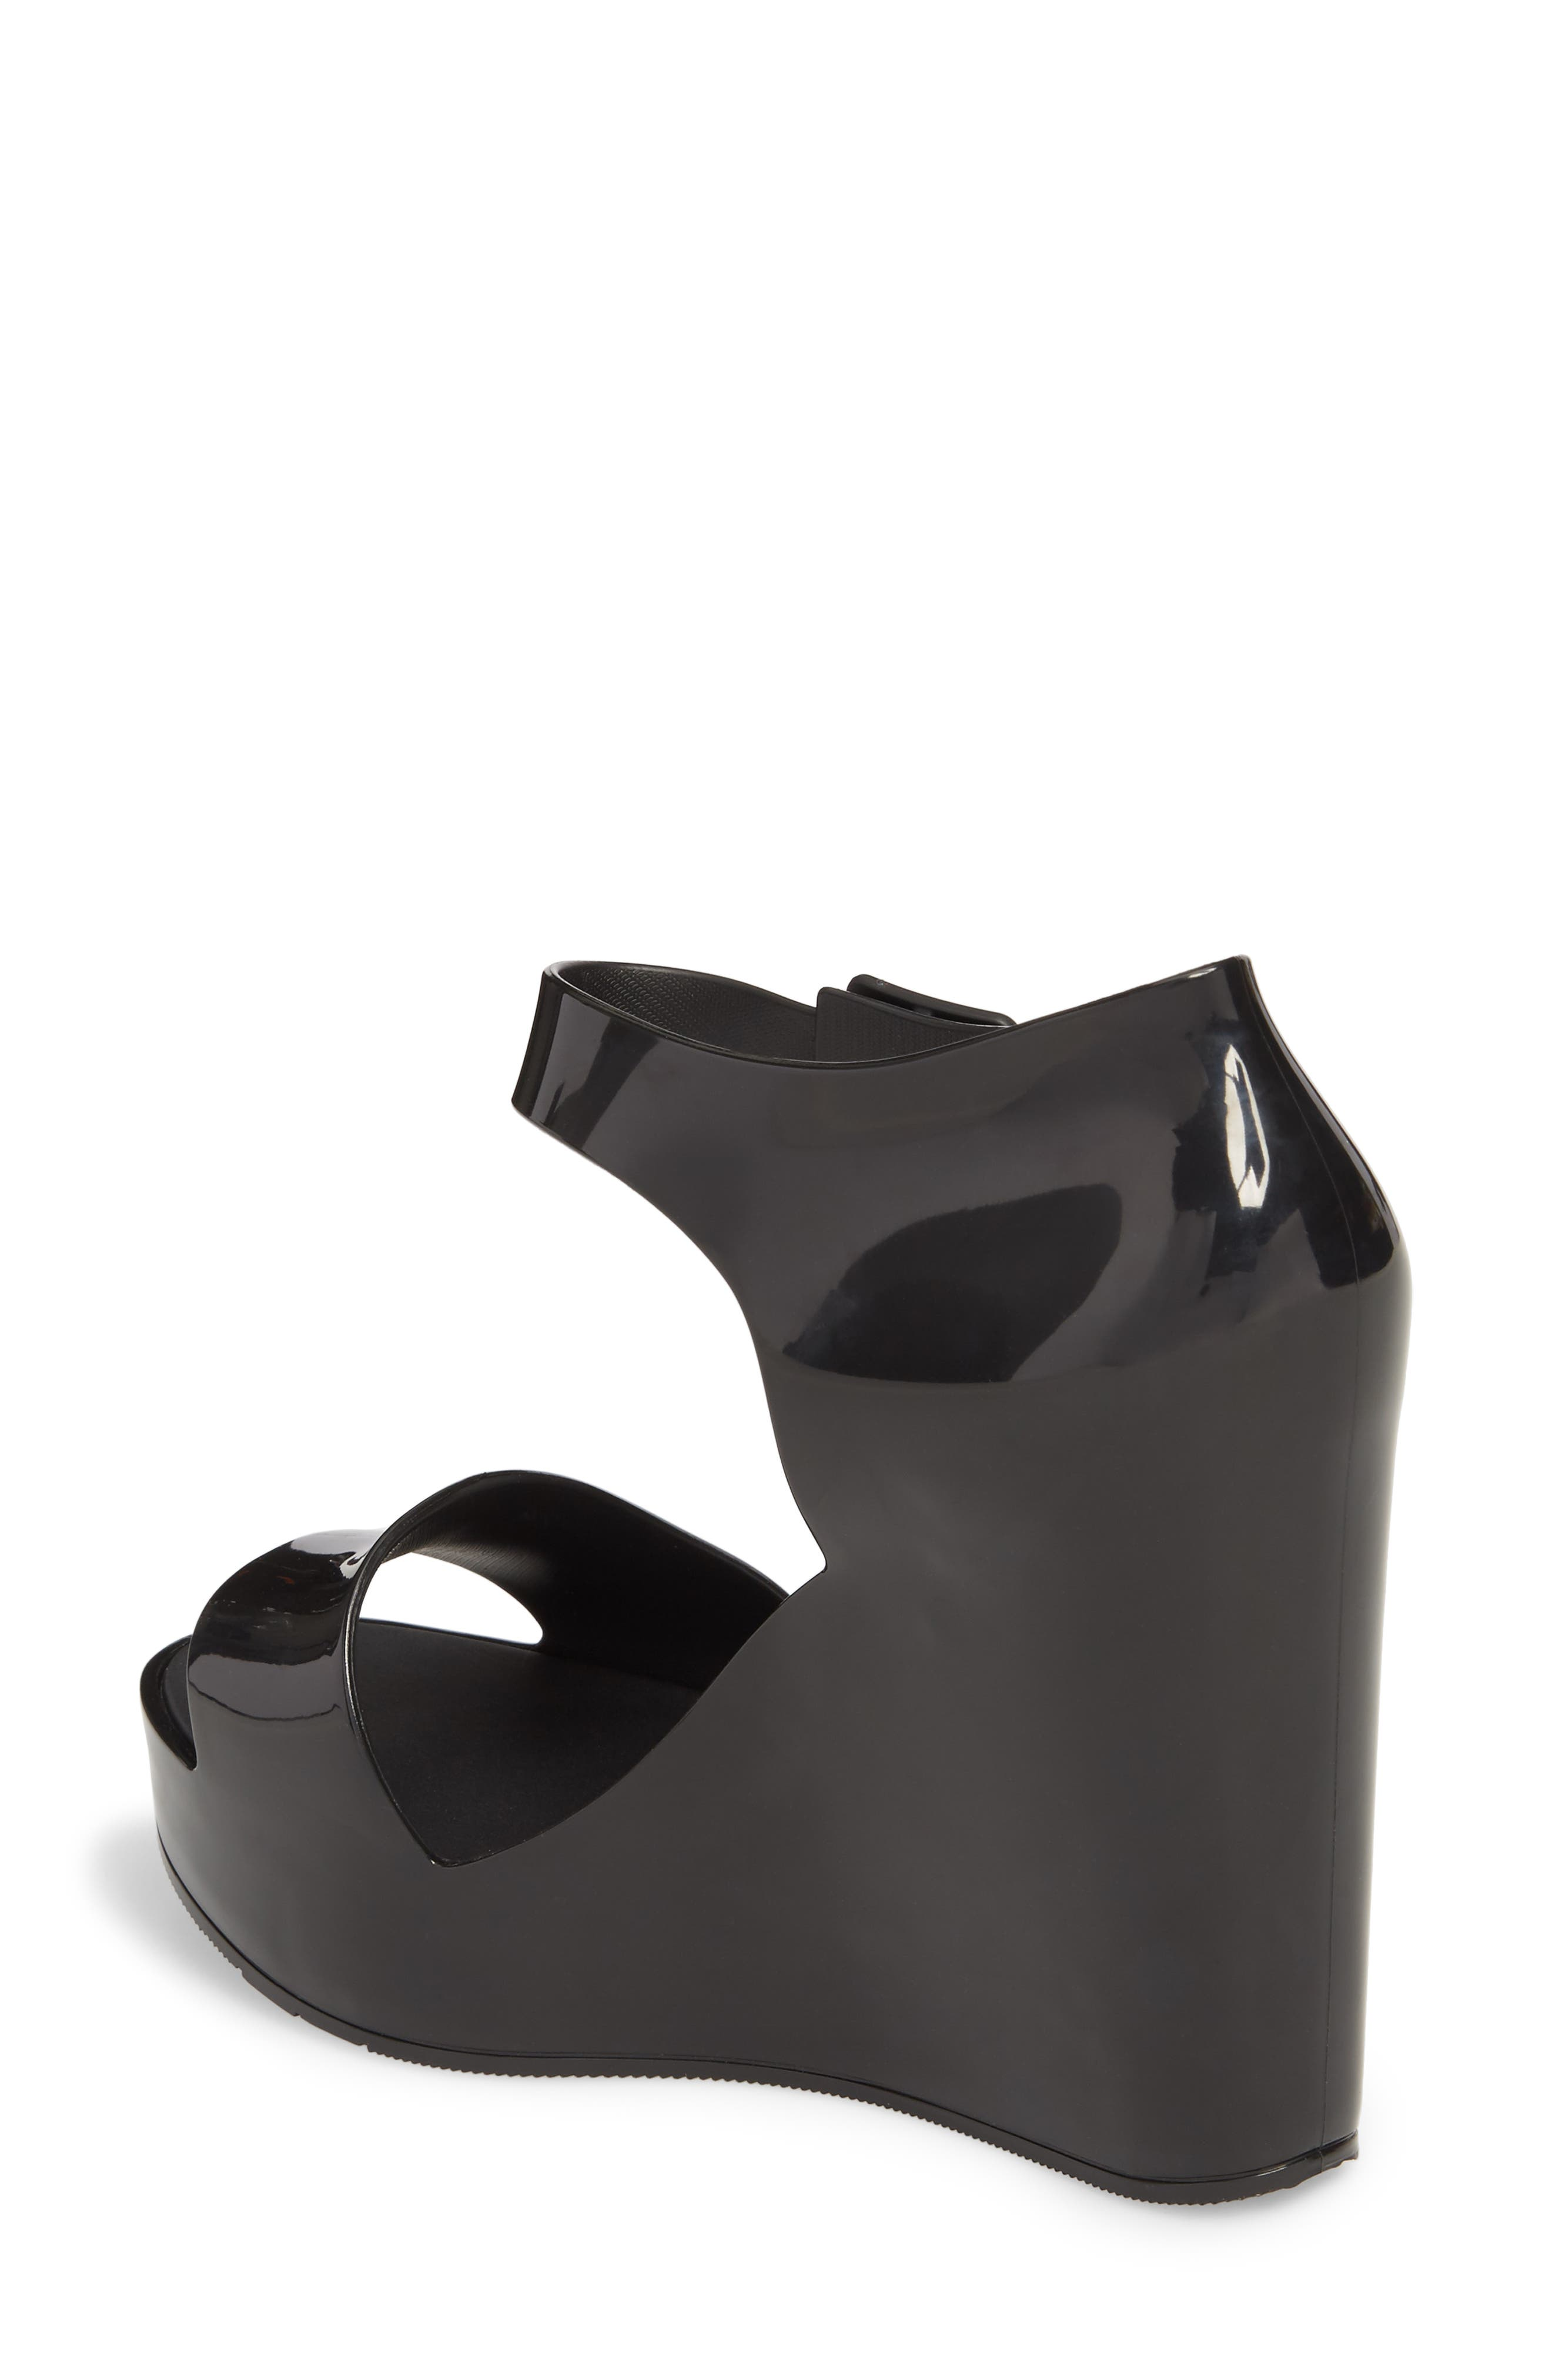 Mar Platform Wedge Sandal,                             Alternate thumbnail 2, color,                             BLACK